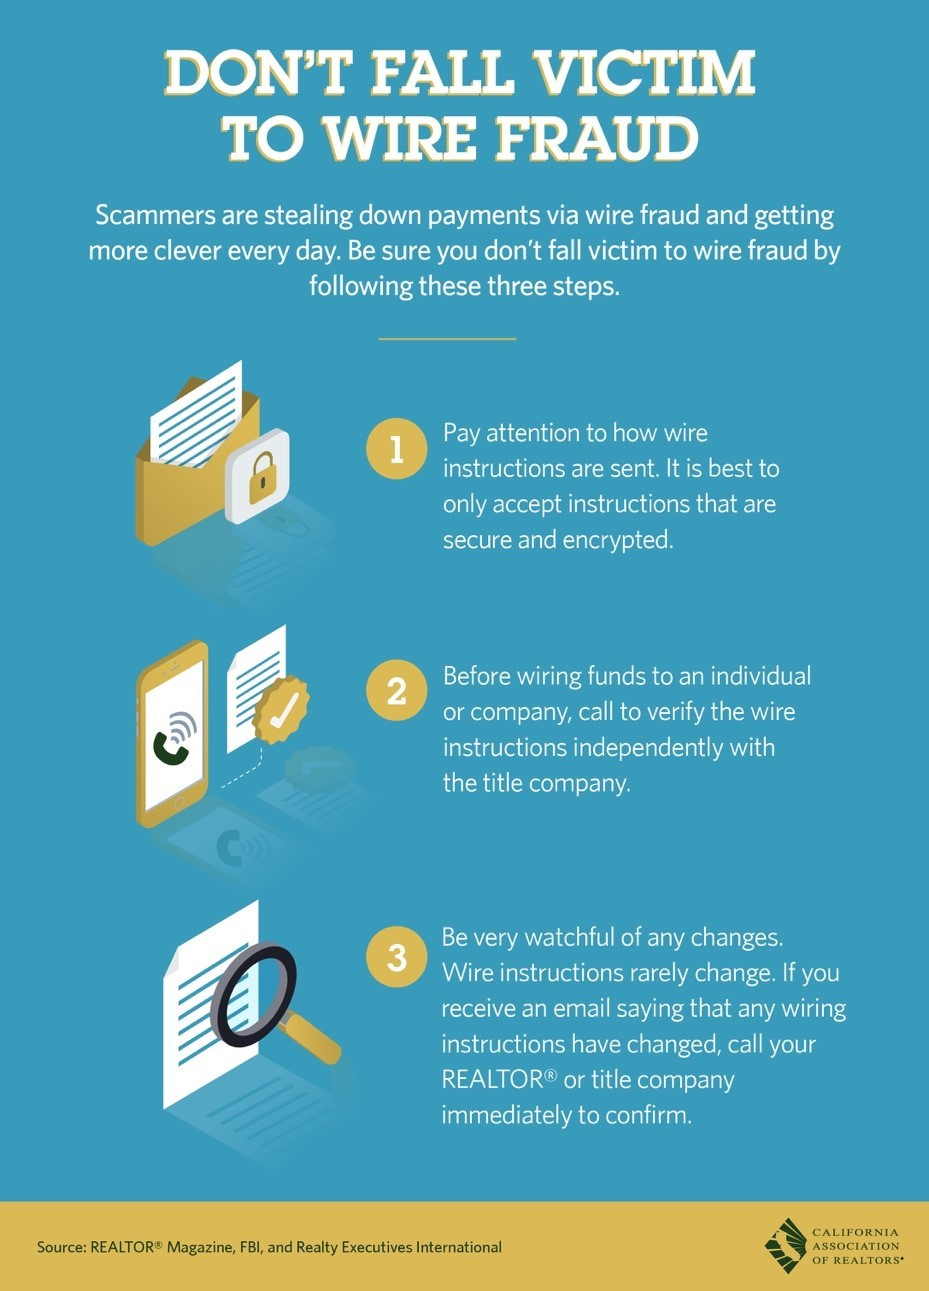 Infographic: Pay attention to how wire instructions are sent. Call to verify wire instructions with the title company.